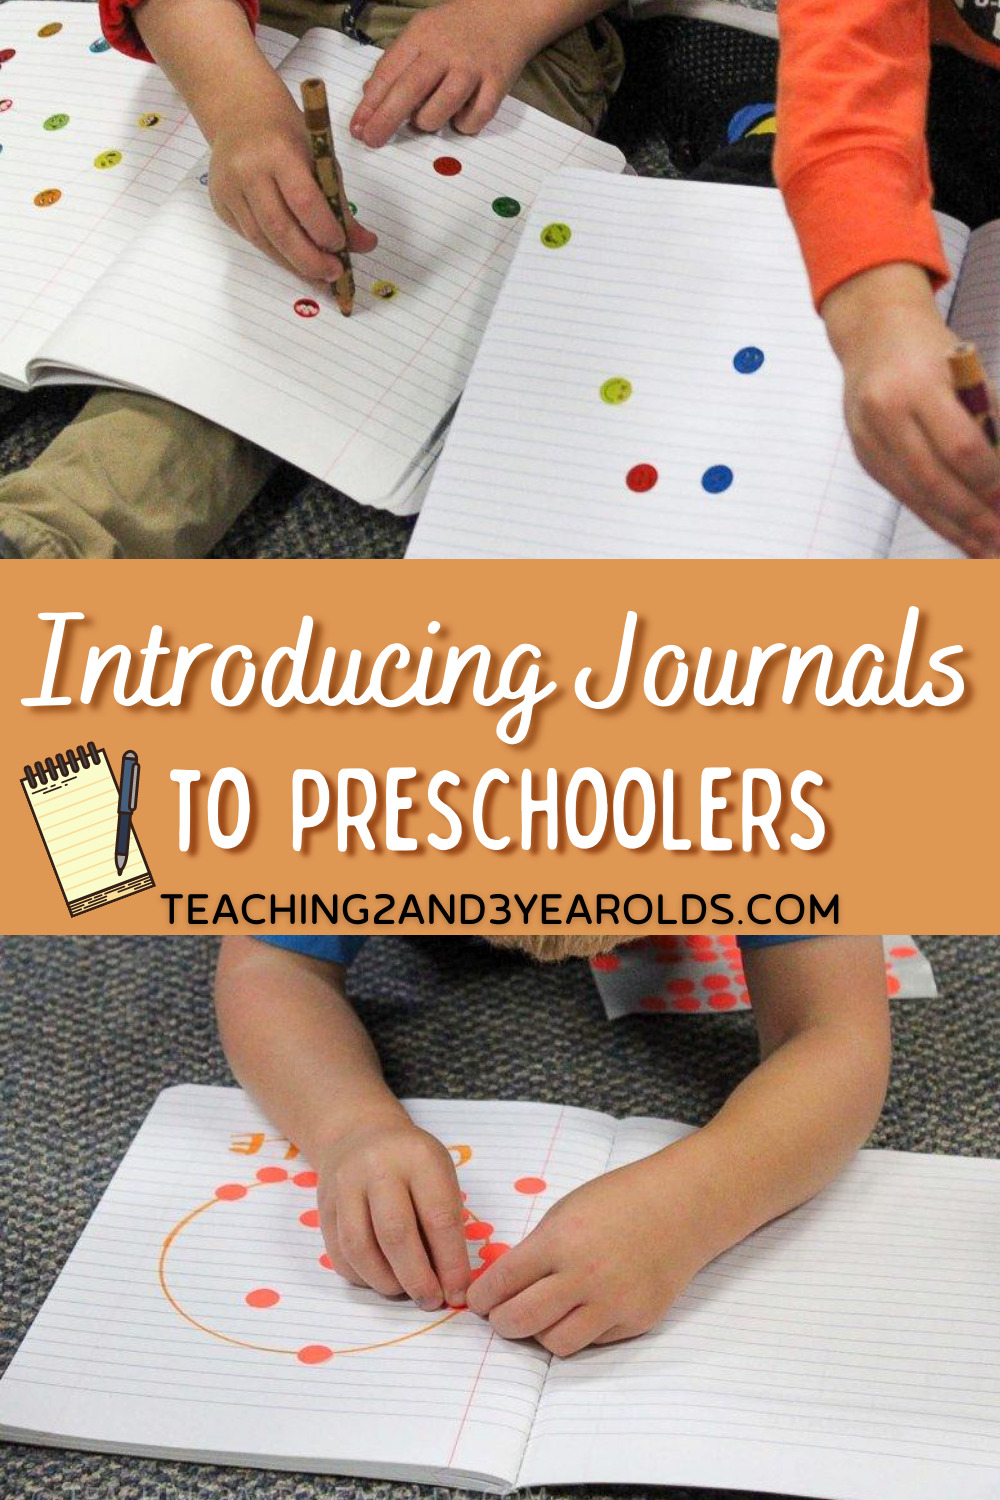 promo image collage of introducing preschool kids to their own journals